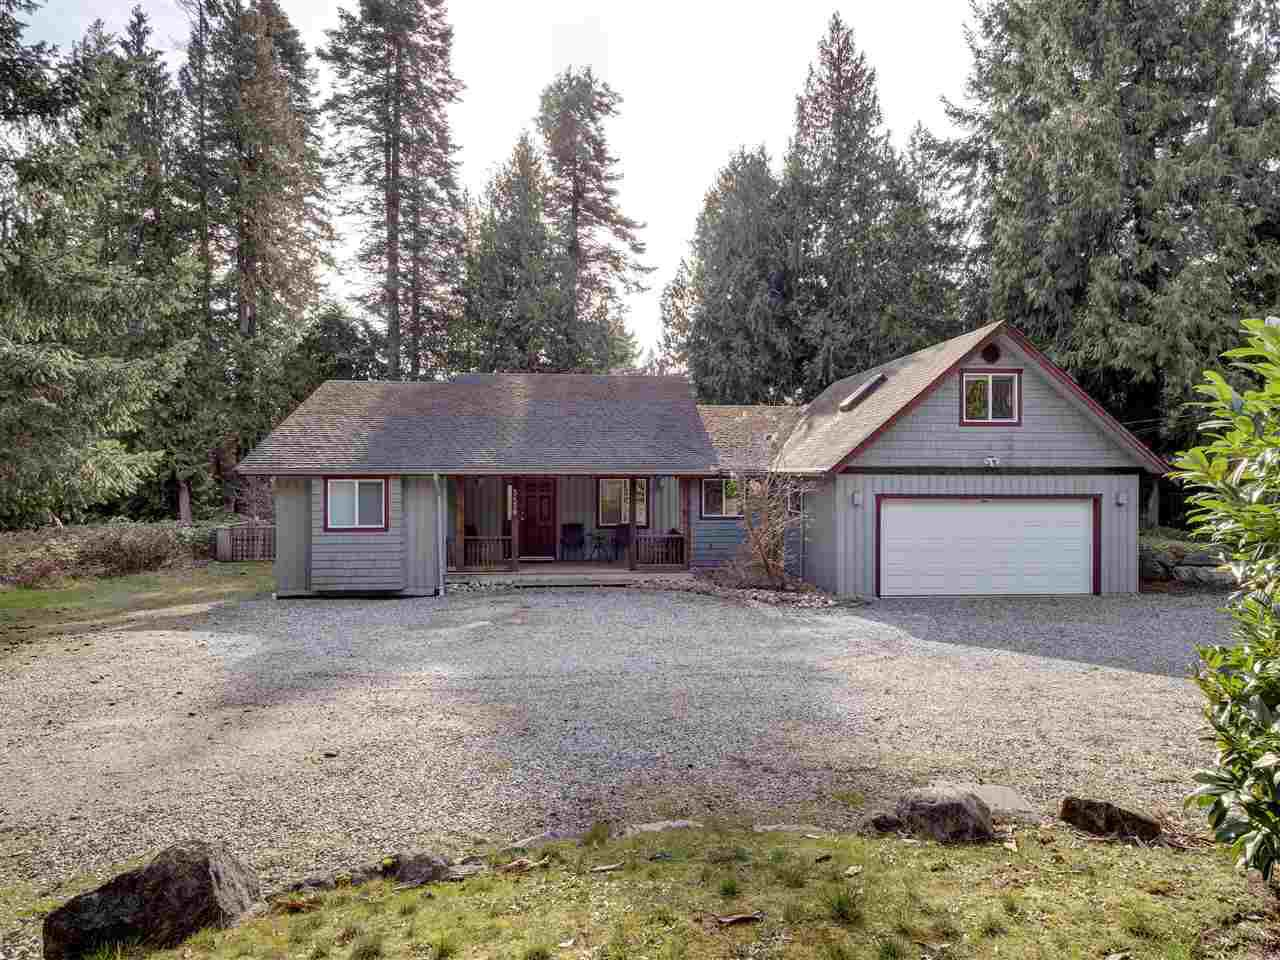 Main Photo: 5430 EUREKA Road in Halfmoon Bay: Halfmn Bay Secret Cv Redroofs House for sale (Sunshine Coast)  : MLS®# R2439401